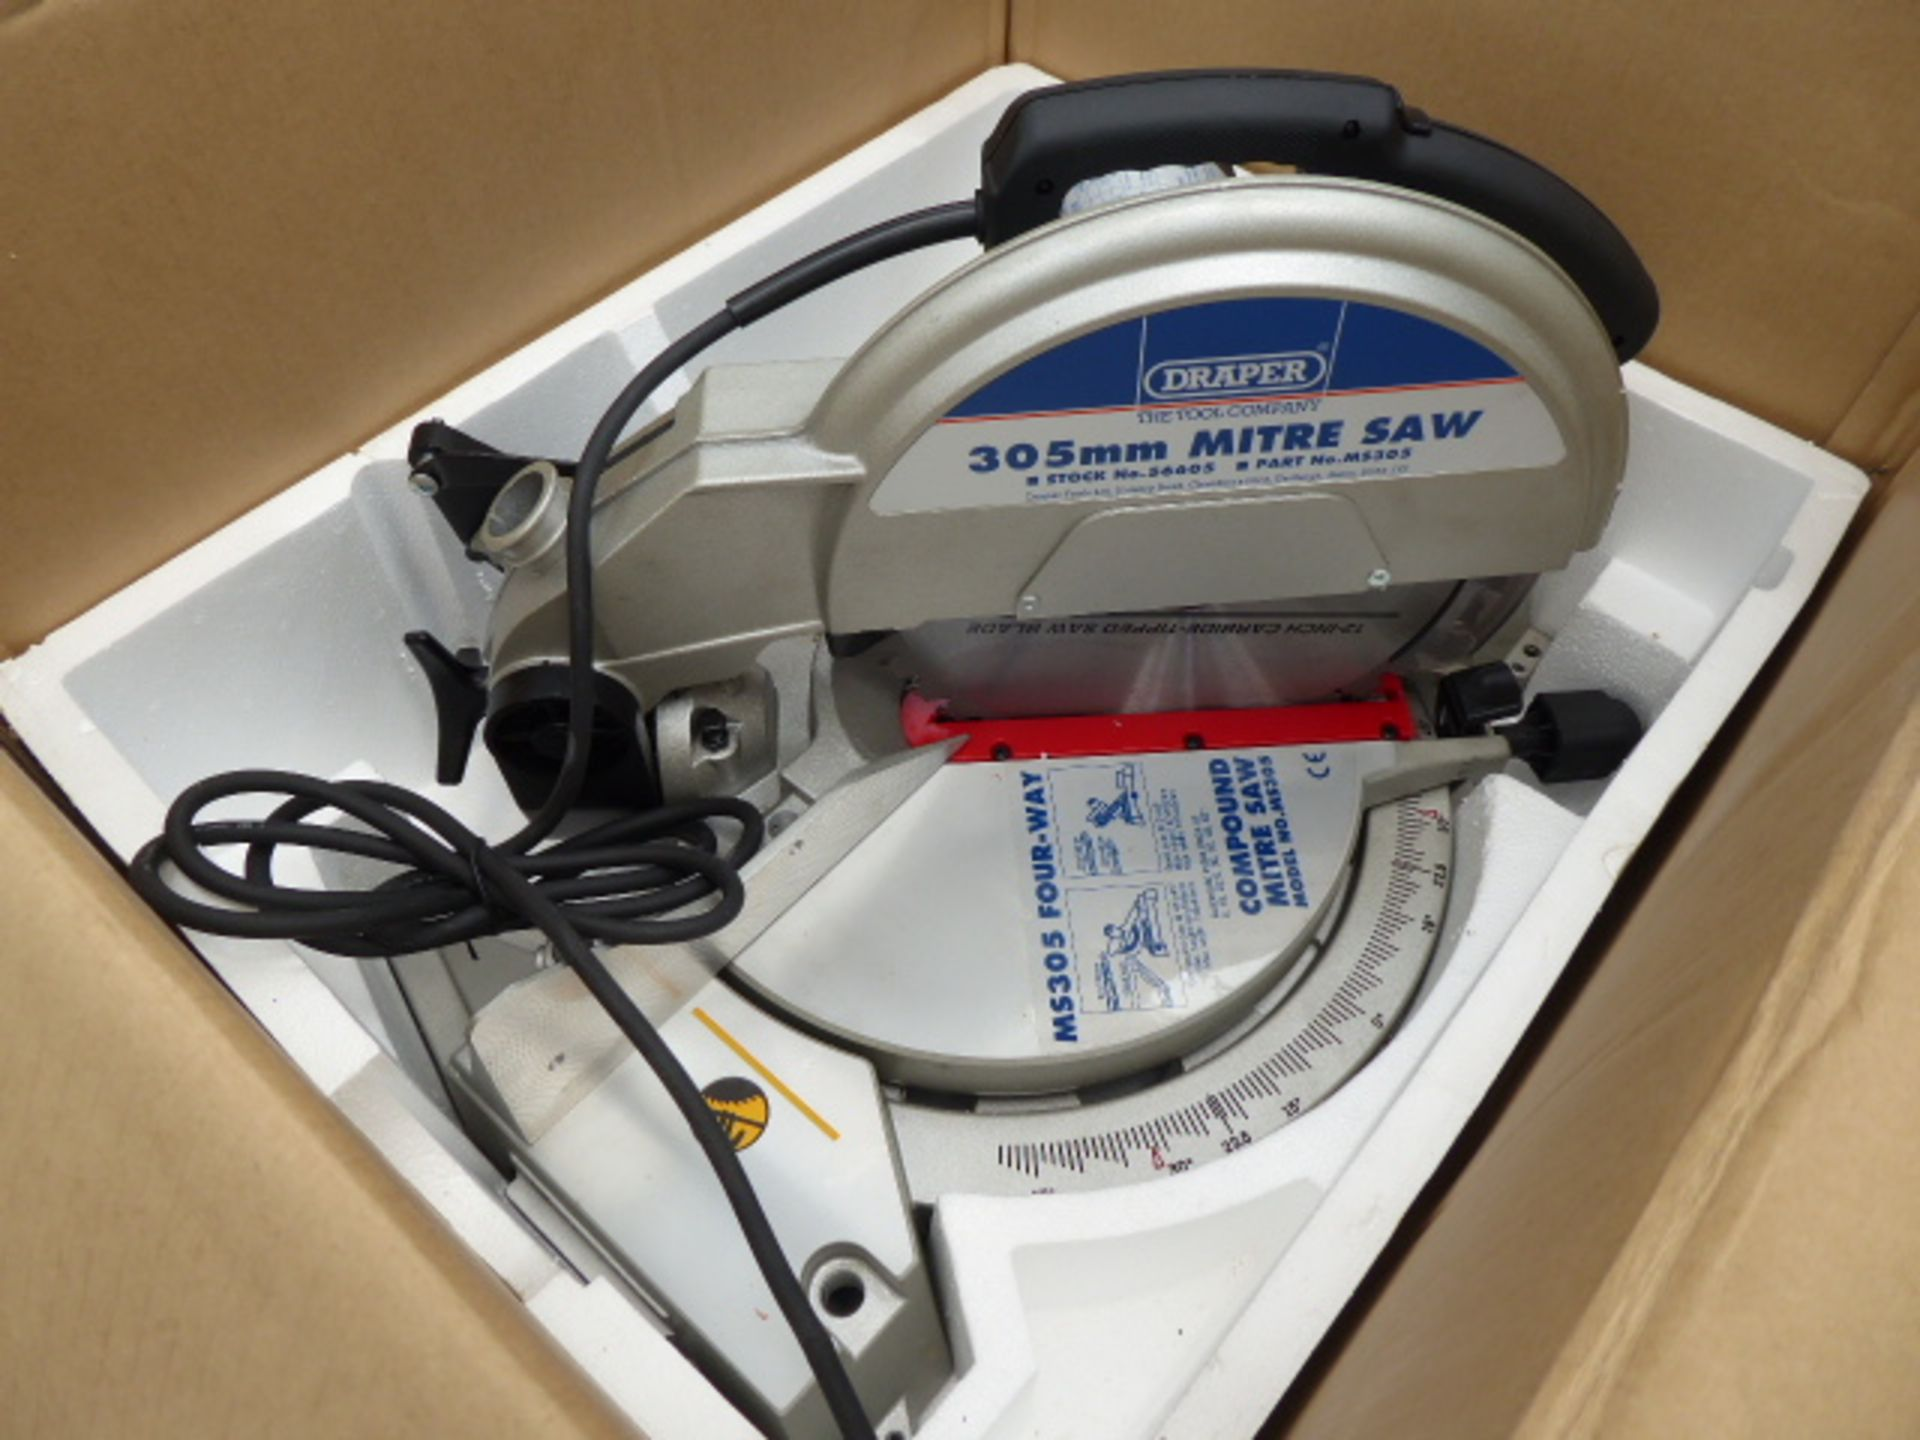 Lot 4873 - 110V boxed Draper compound mitre saw